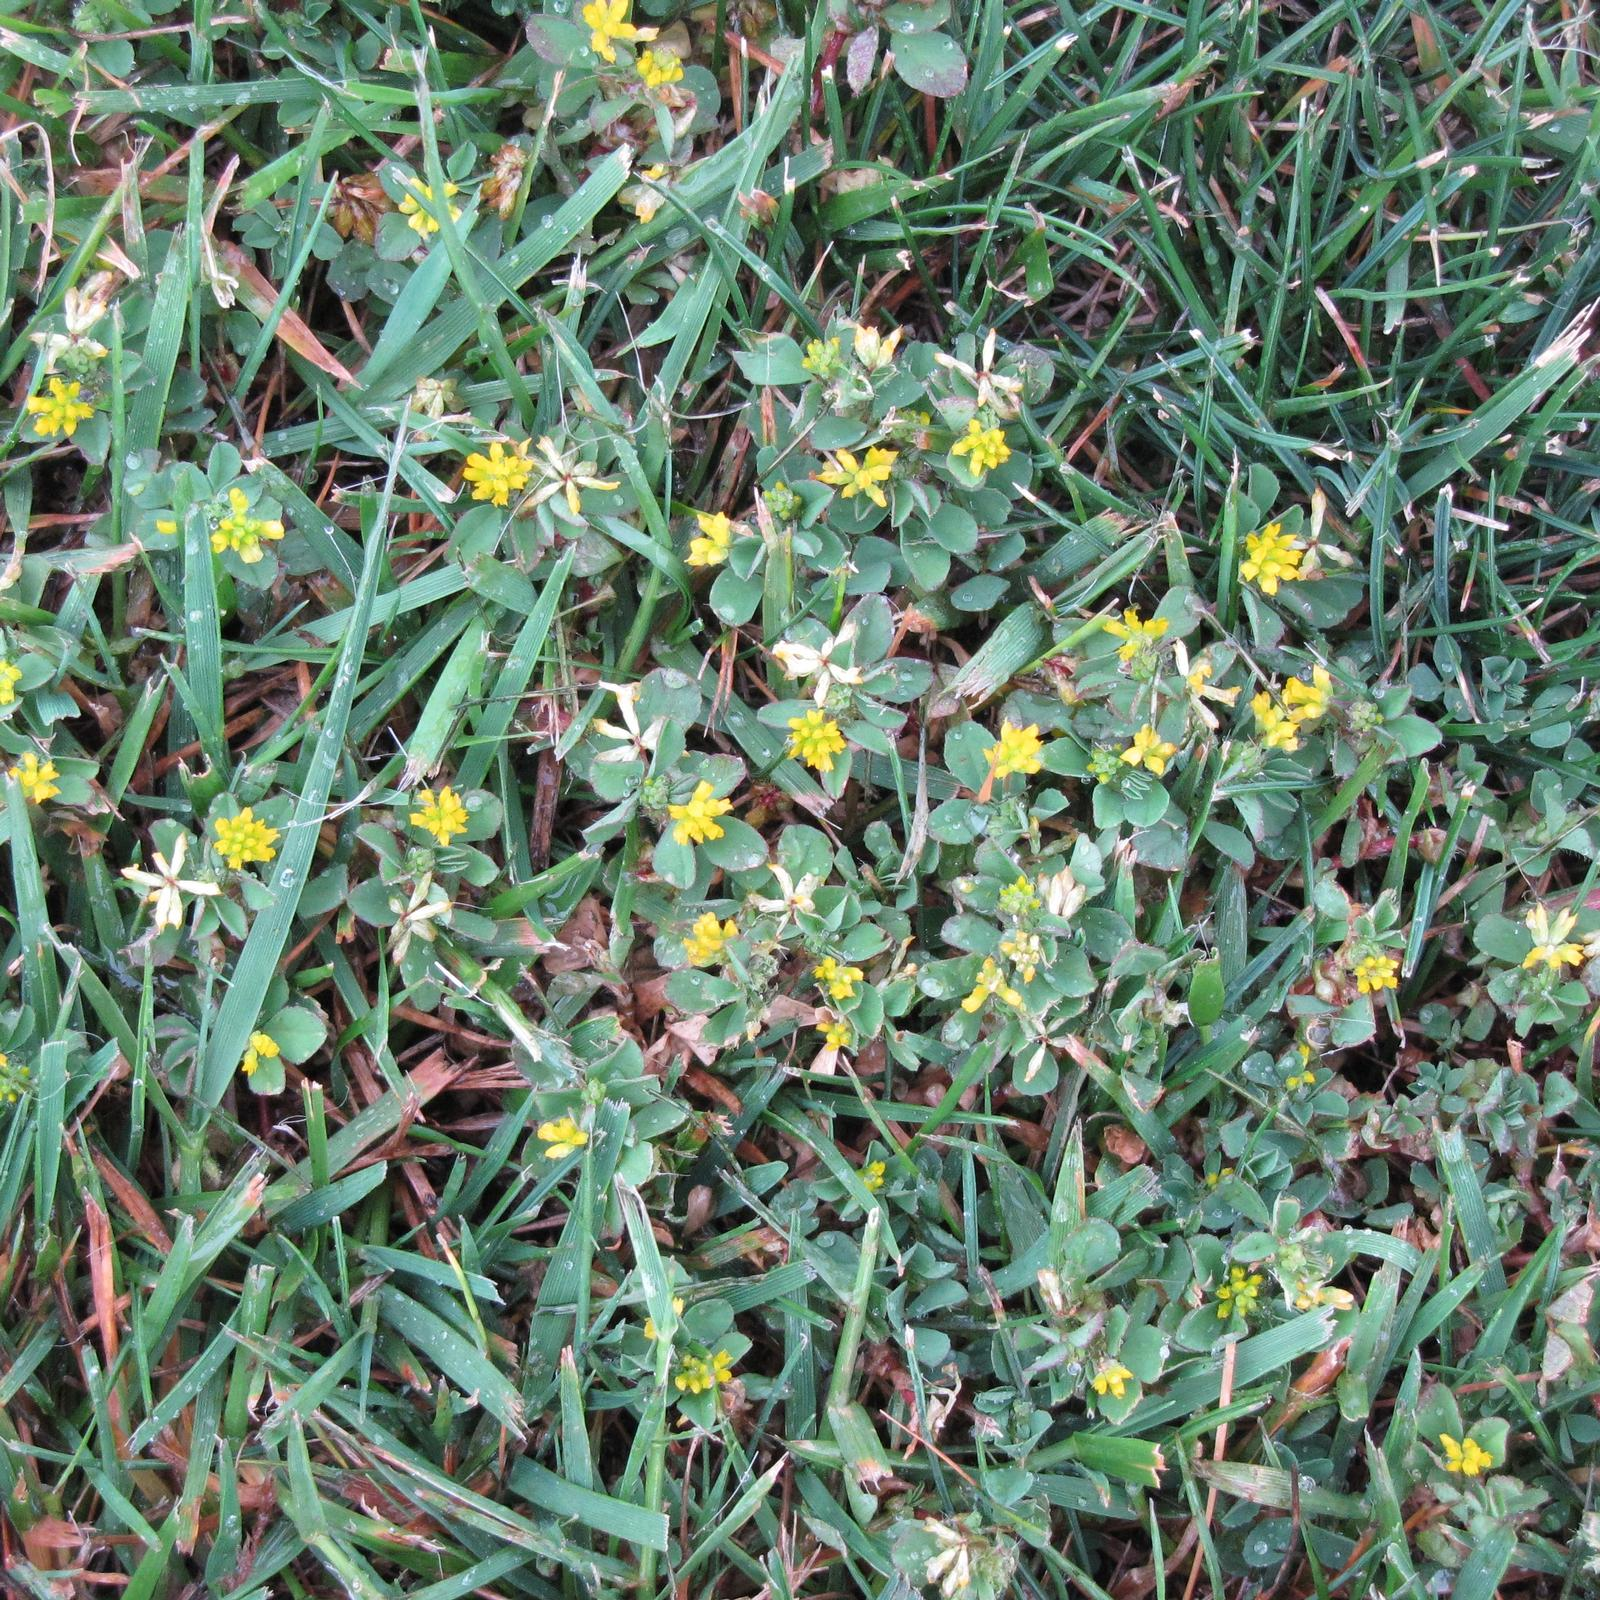 medick advice on identification and control of medick weed in